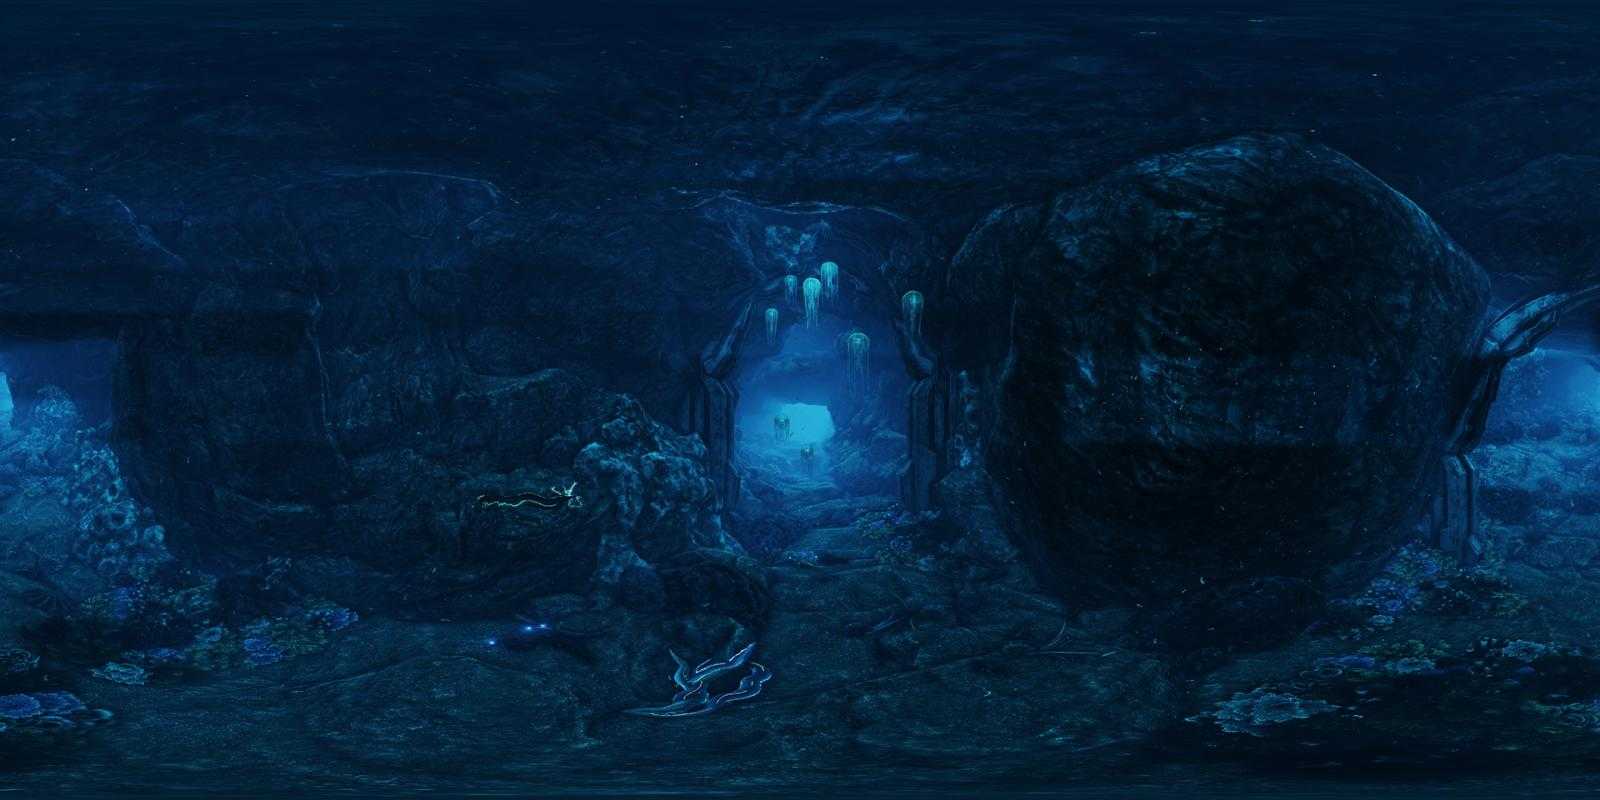 large.5a7504f88cd61_roguewolf91-PassageThroughTheDepths-Panoramic360Stereoscopic3D.jpg